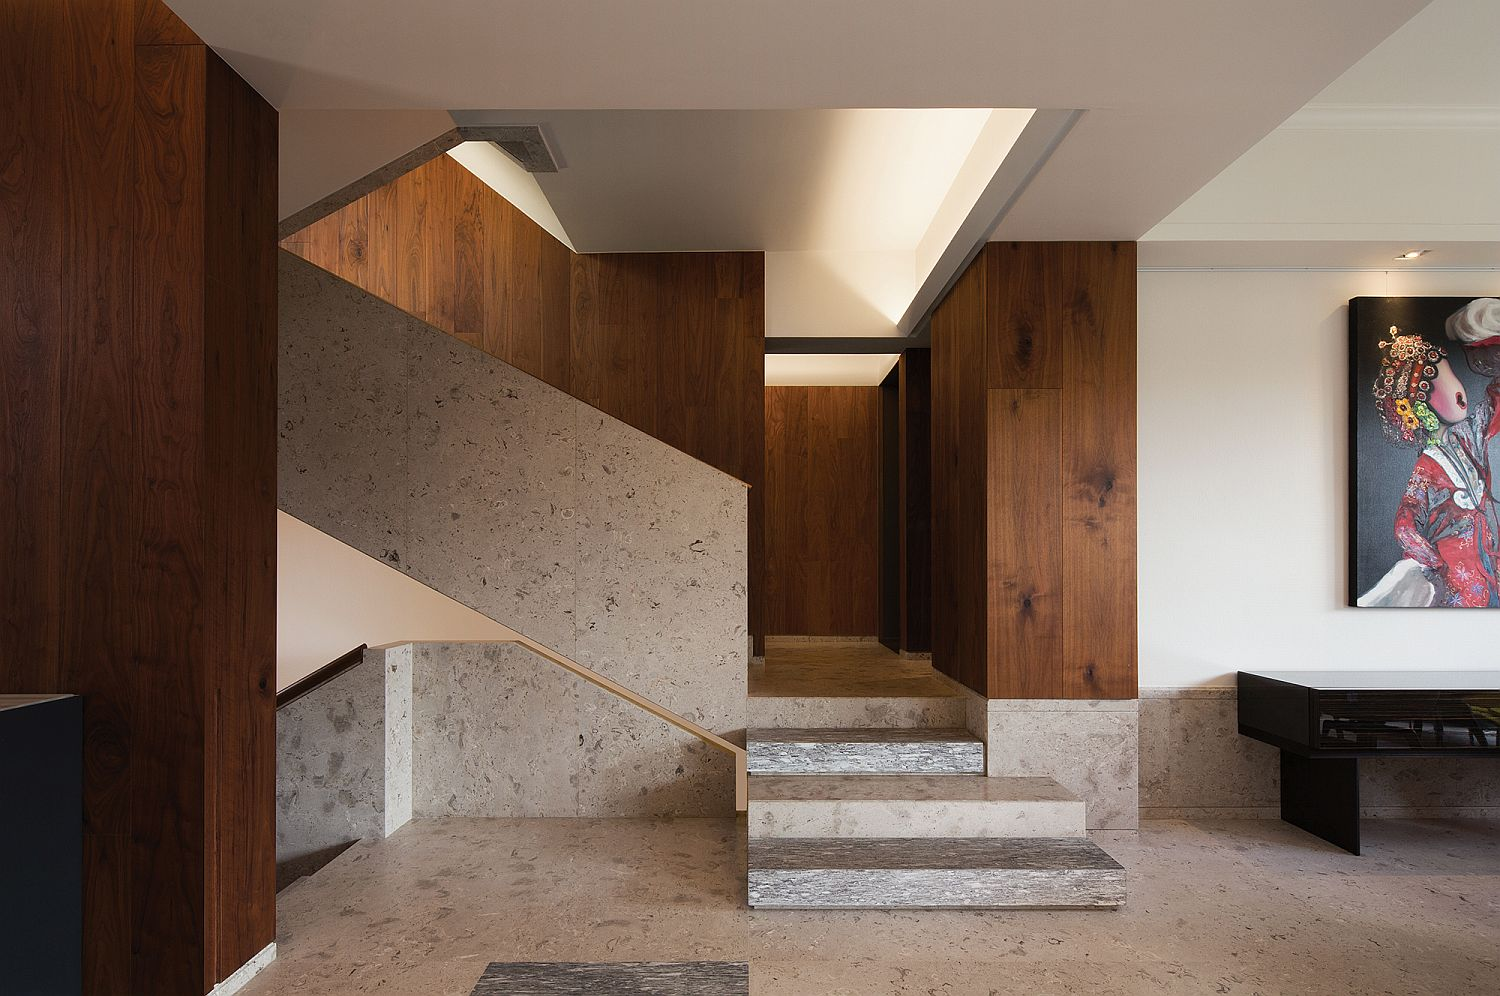 Limestone-and-wood-entry-of-the-house-with-curated-wall-art-71381